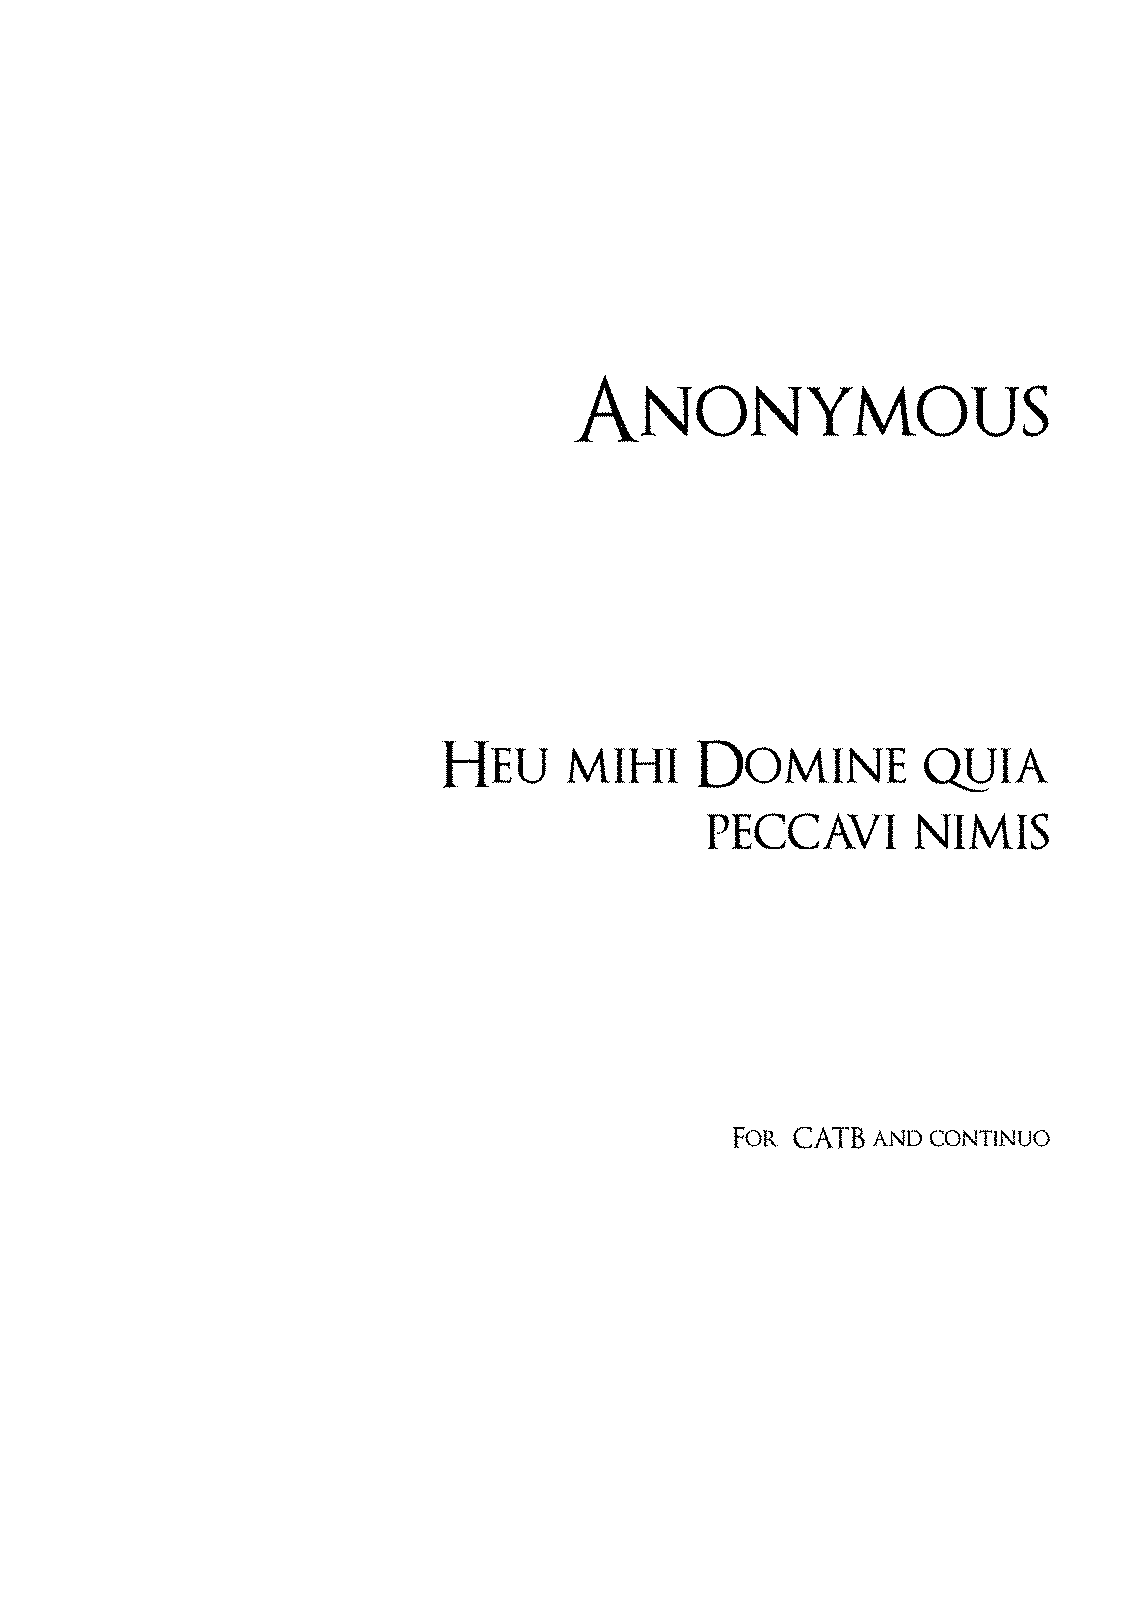 PMLP633947-Anonymous HeuMihi.pdf